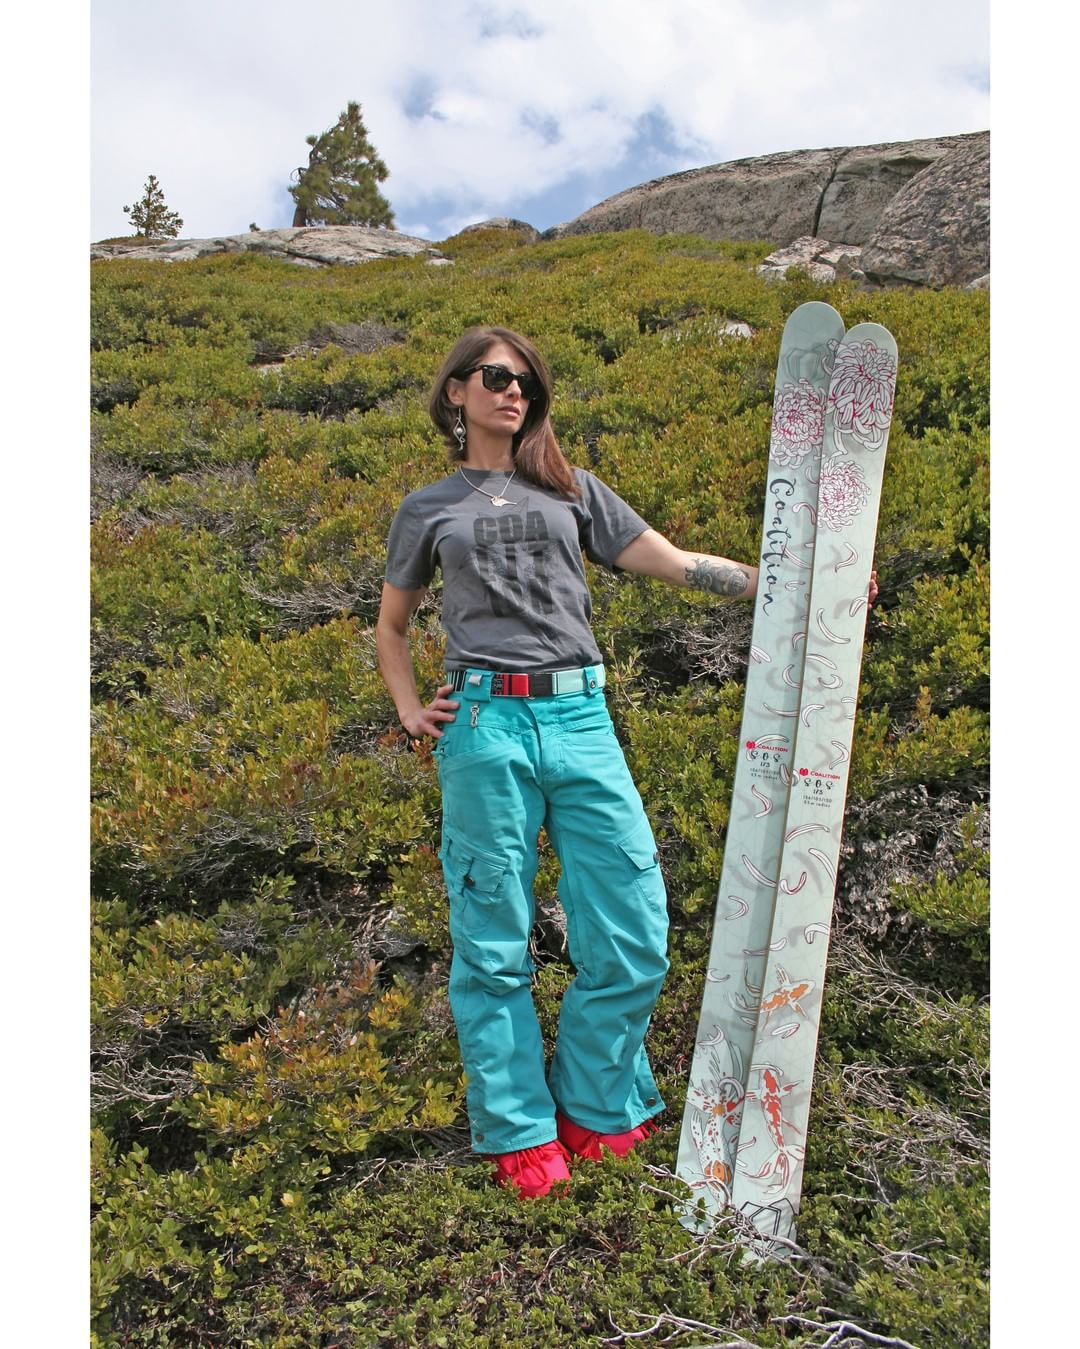 Our SOS all mountain ski is the catz pajamaz; our best selling ski with the most verstatility. These sticks get you there with confidence! @c_ros